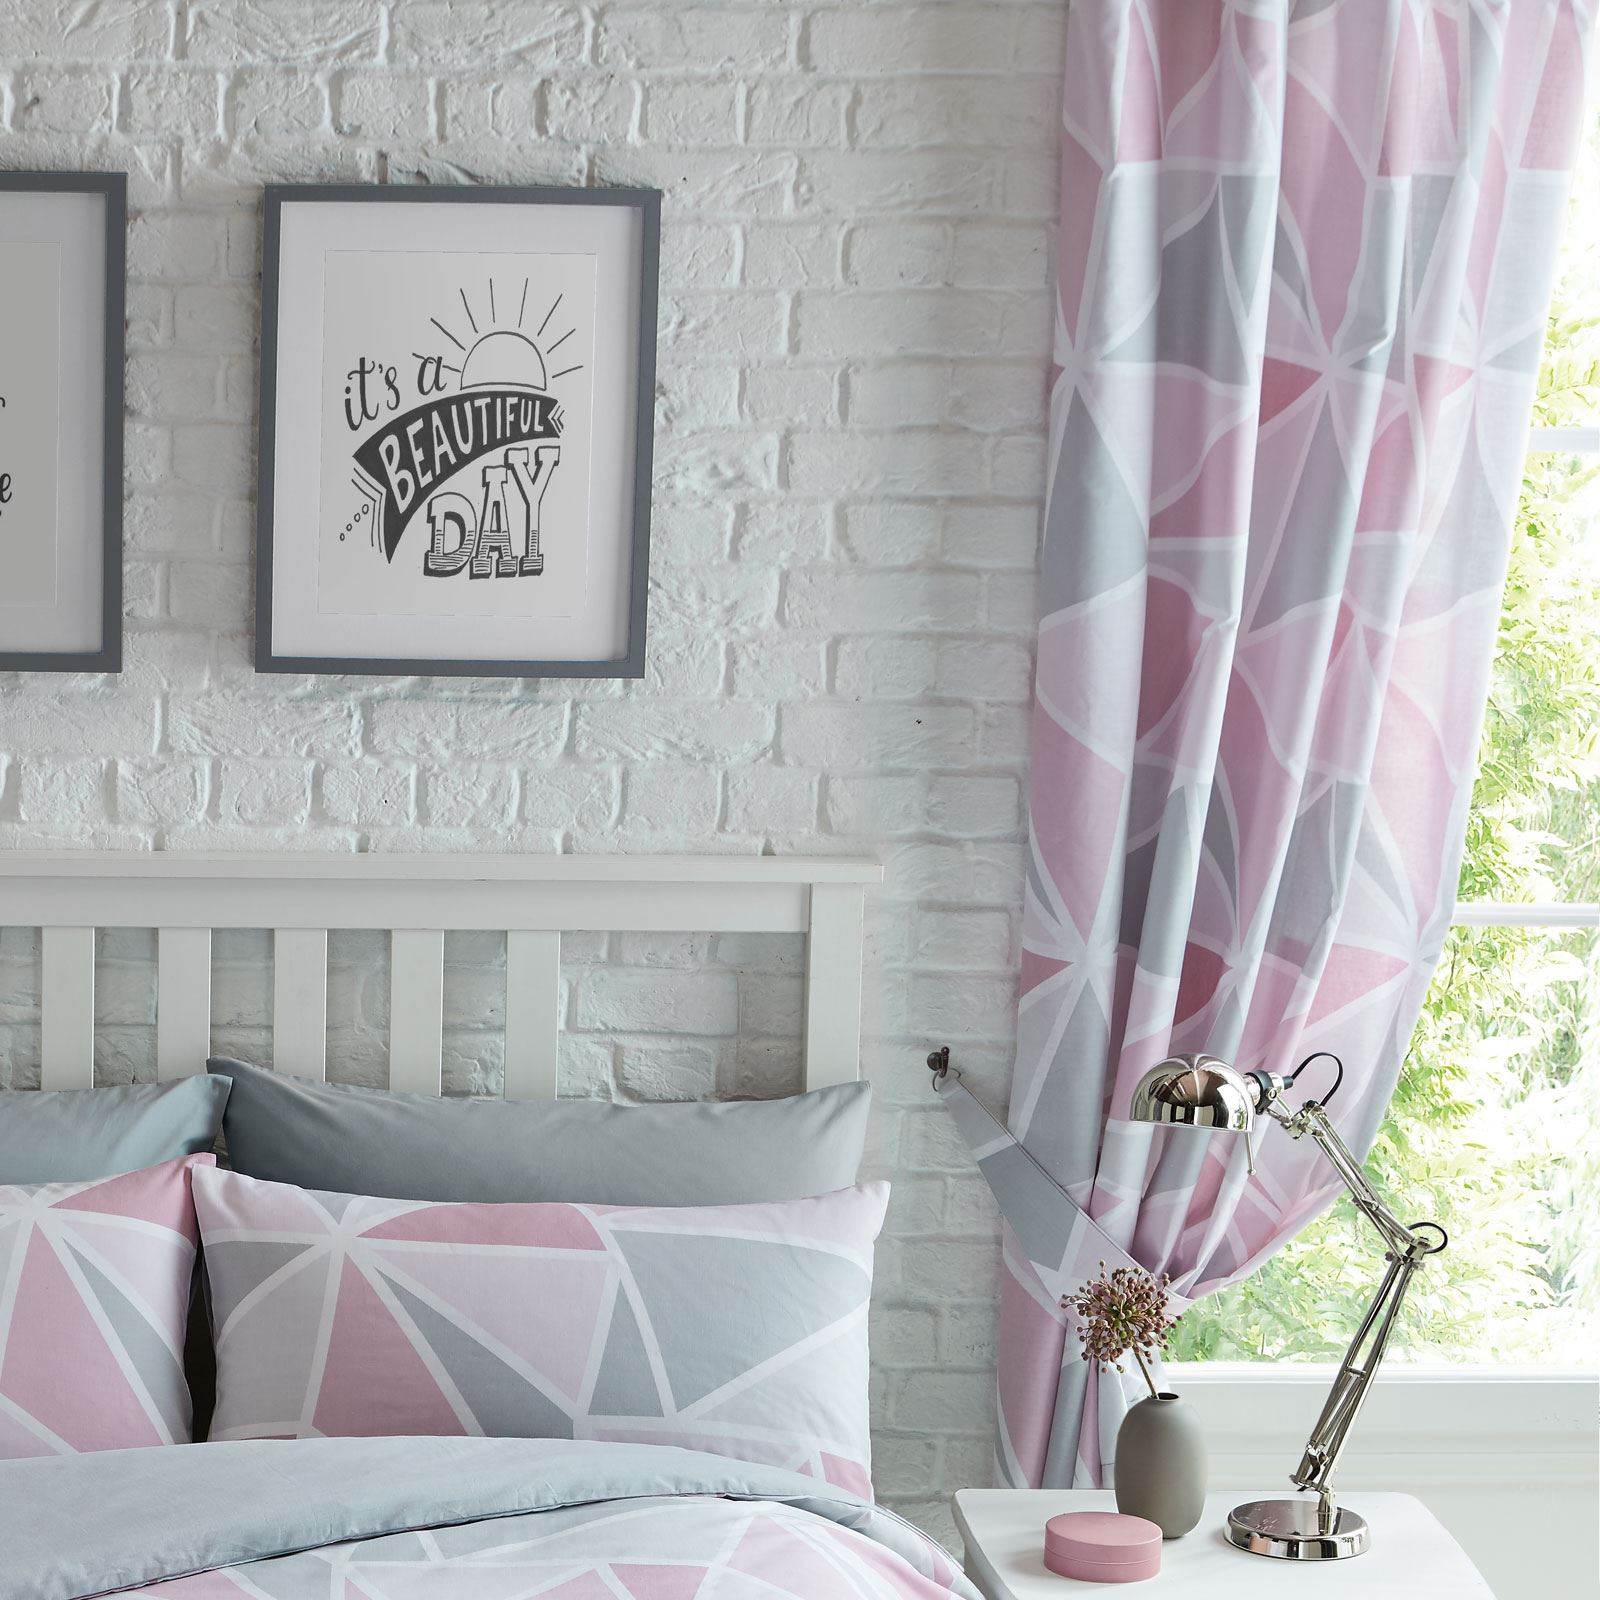 Details about METRO GEOMETRIC TRIANGLE GREY PINK LINED CURTAINS BEDROOM 72\